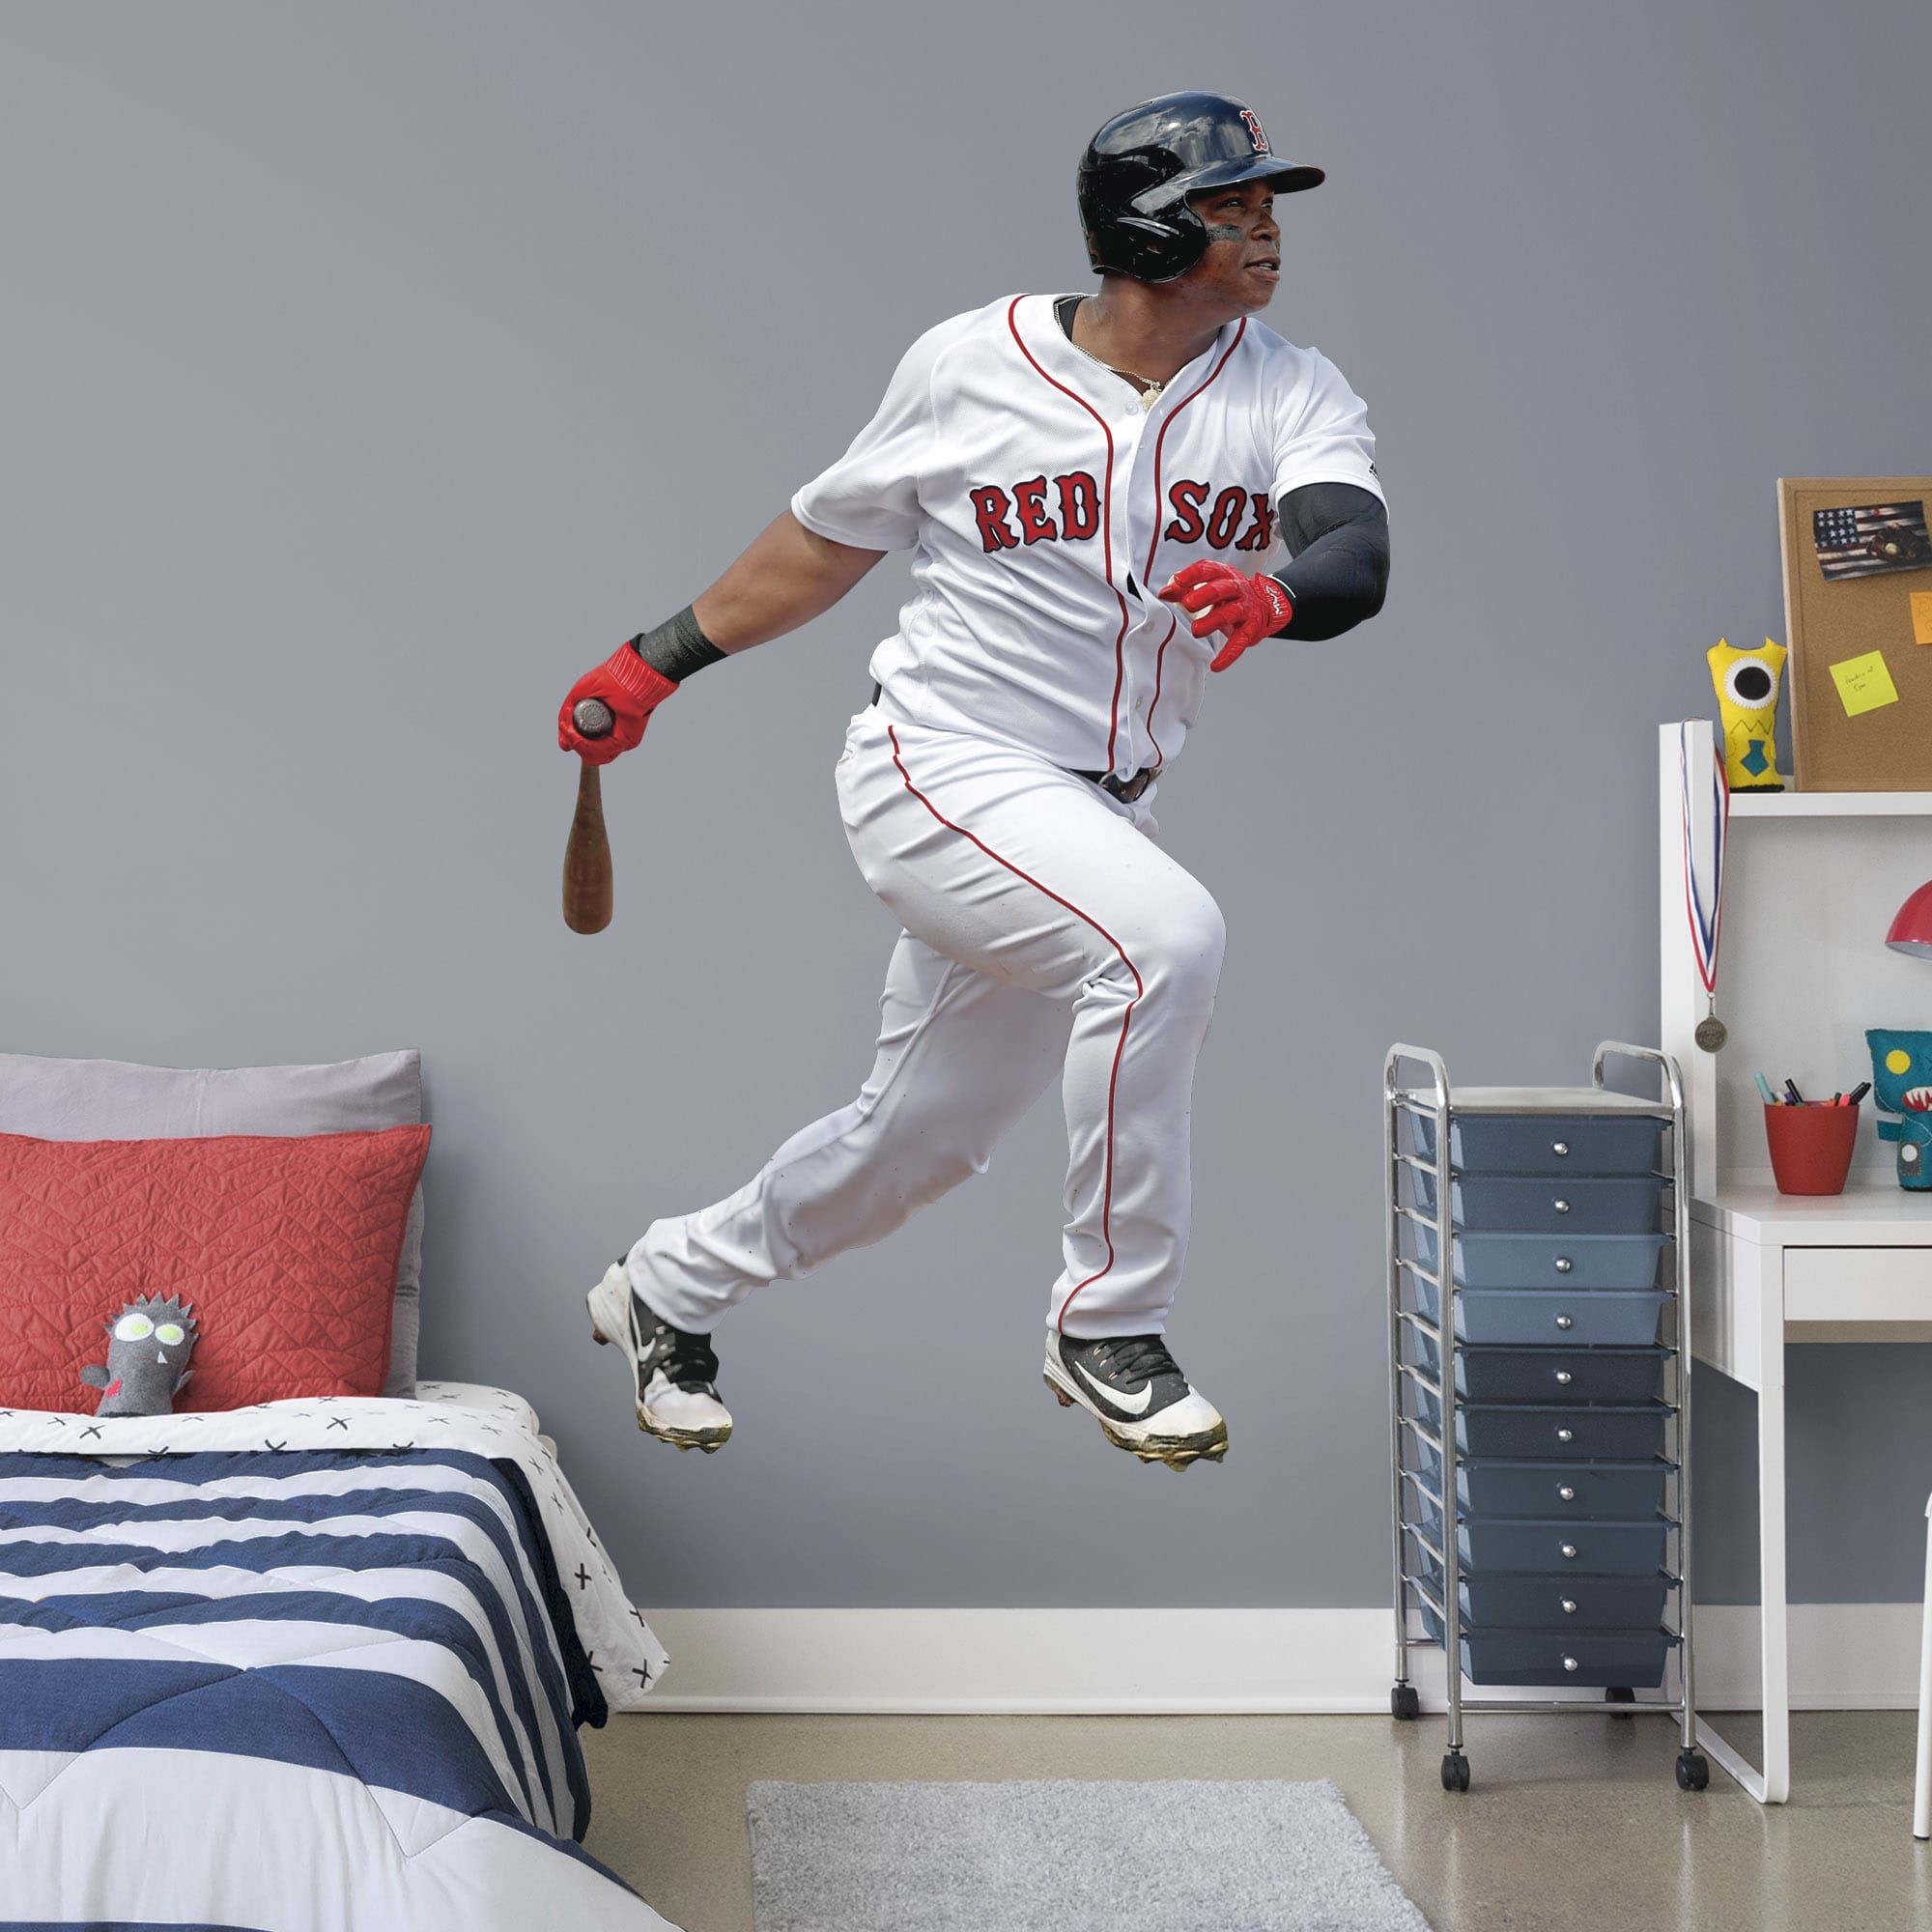 Rafael Devers Life Size Officially Licensed Mlb Removable Wall Decal Removable Wall Decals Wall Decals Removable Wall